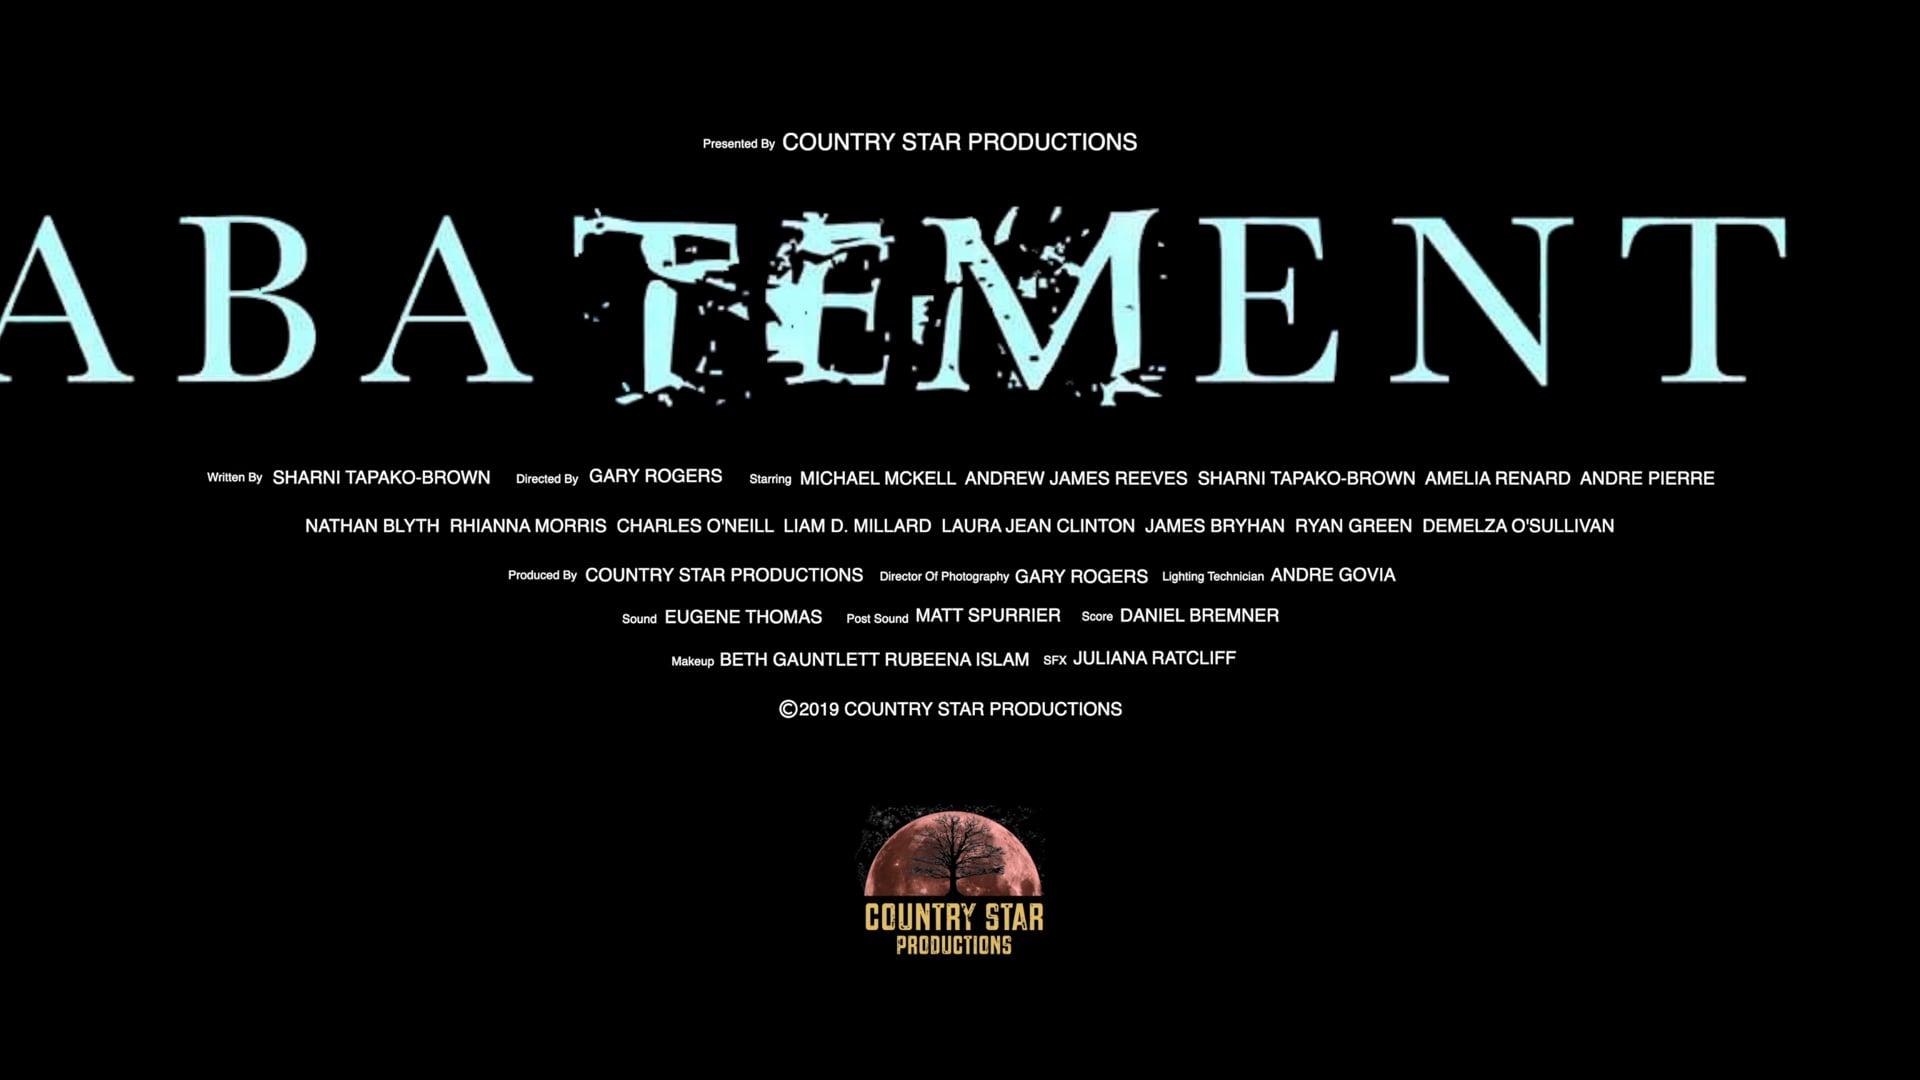 Abatement - The official trailer